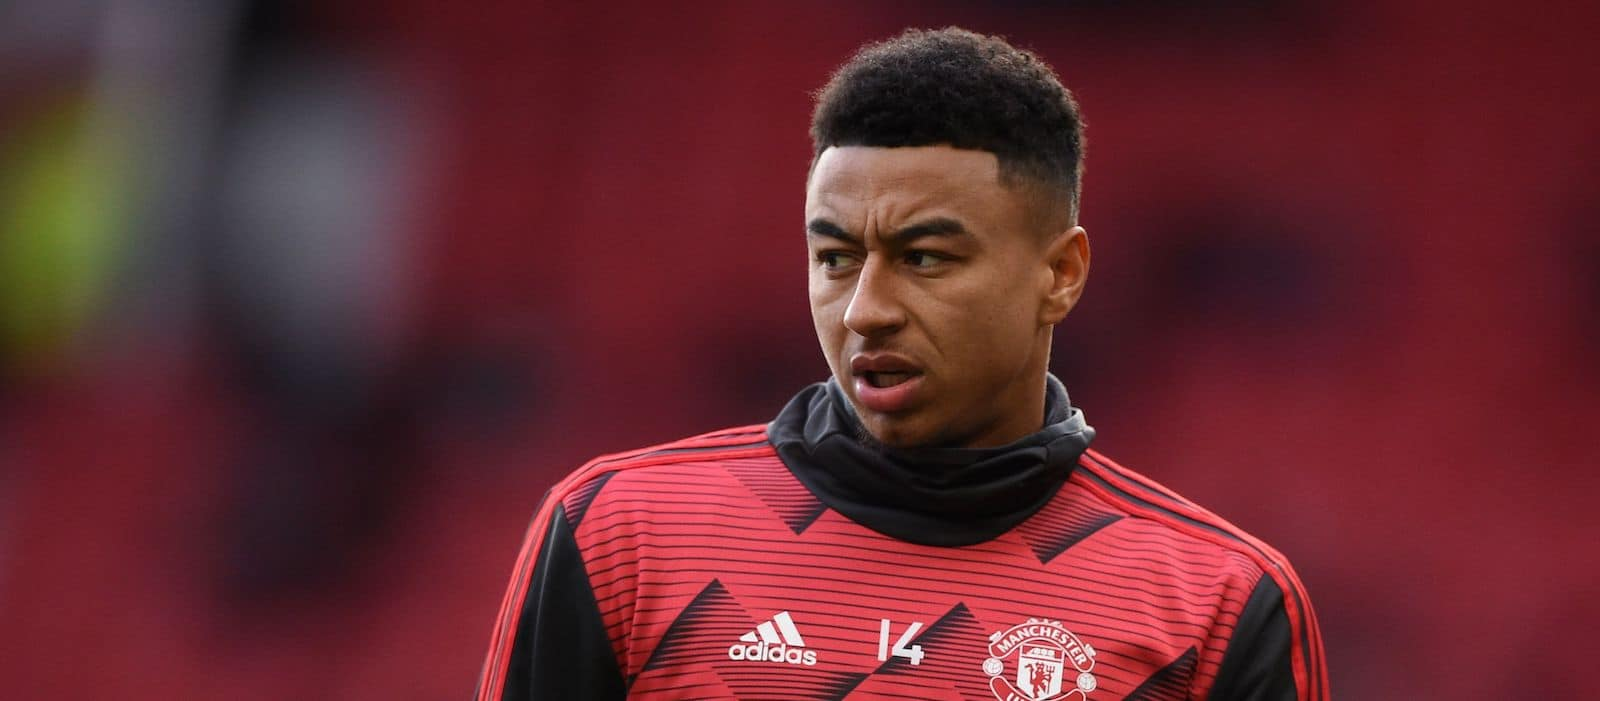 Jesse Lingard is still a United player 'through and through', manager says